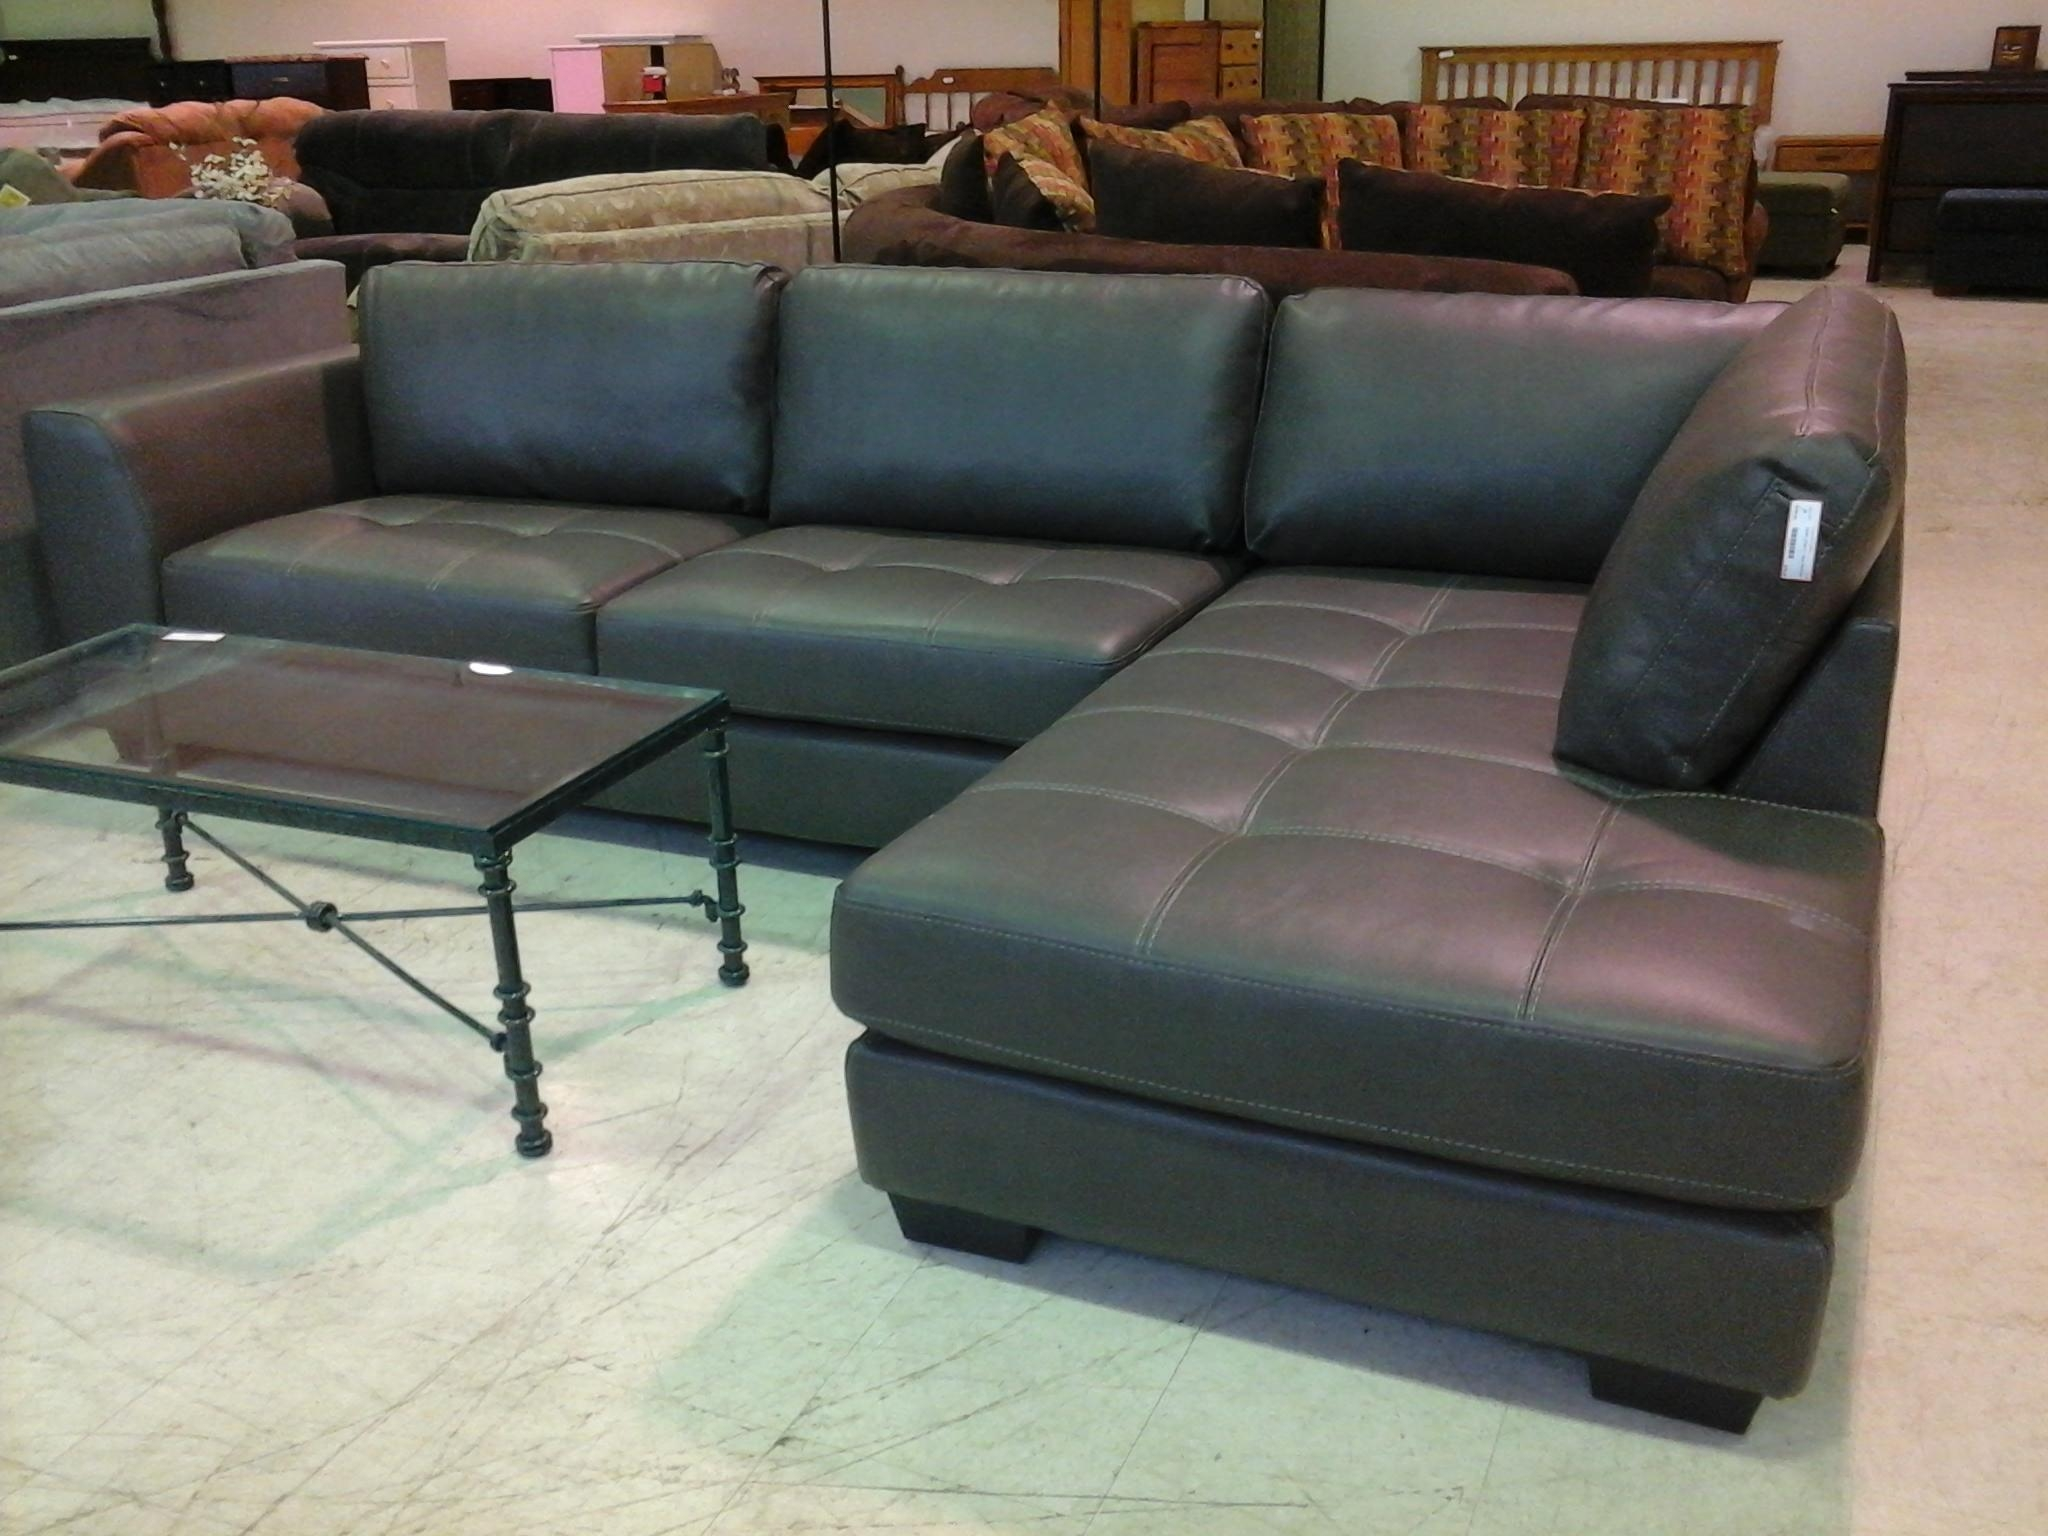 Charcoal Grey Sofa With Chaise | Tehranmix Decoration Intended For Charcoal Grey Leather Sofas (View 6 of 20)